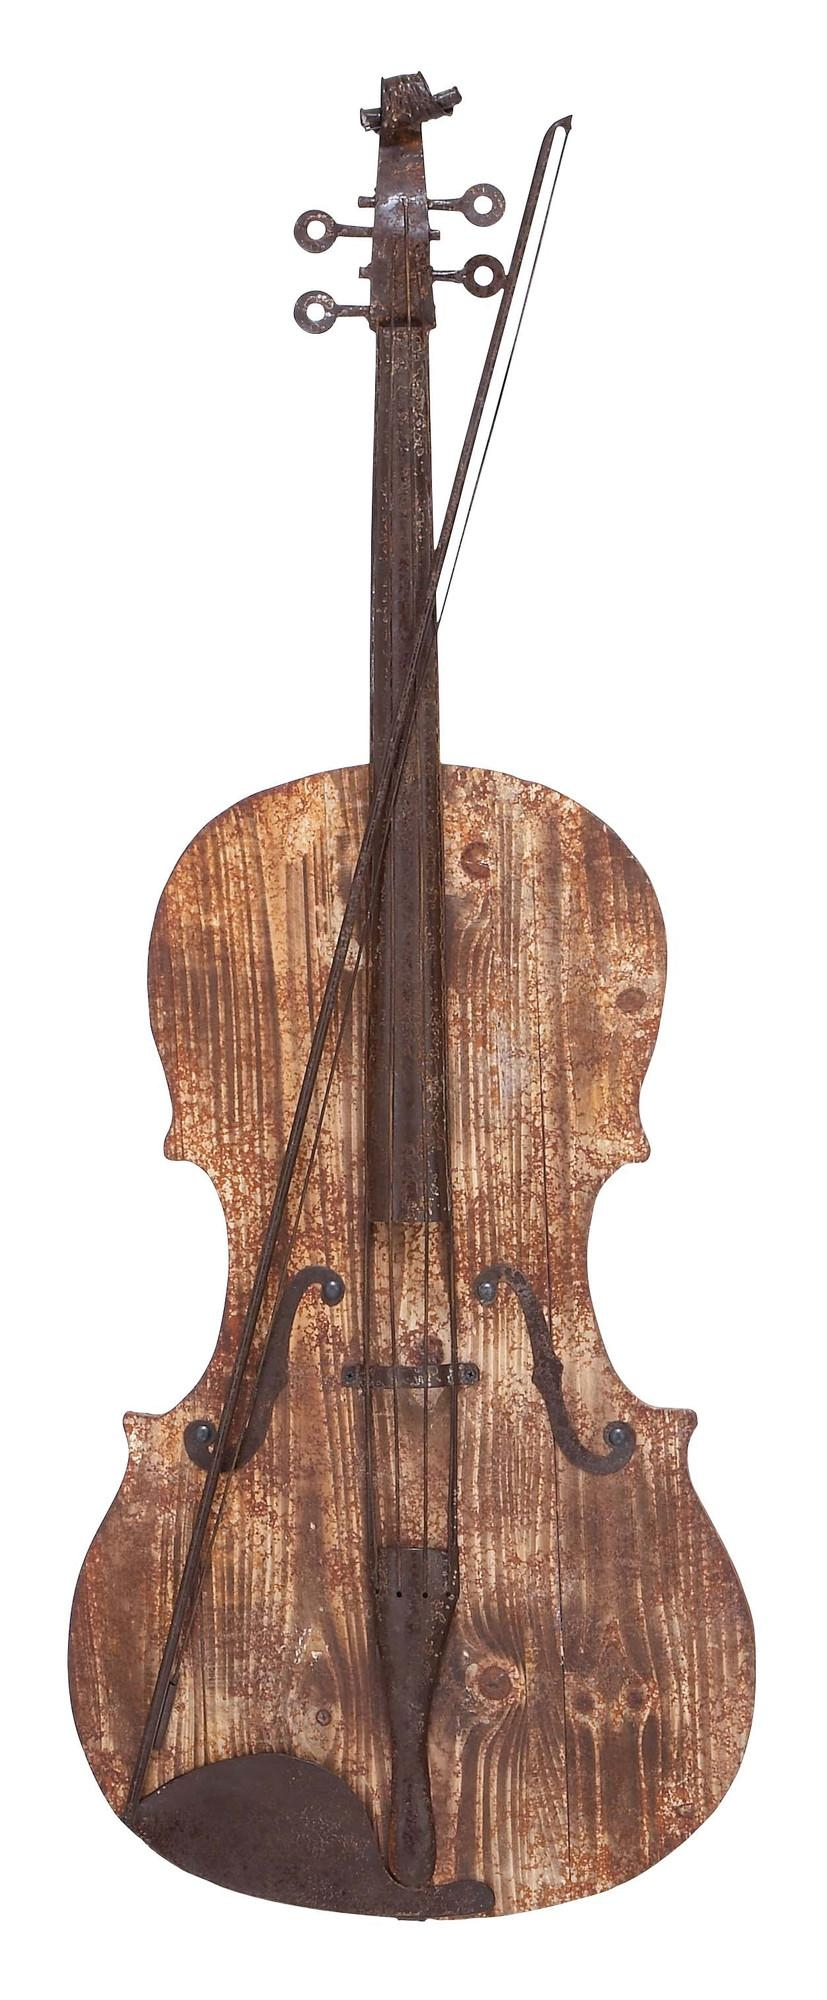 3D Violin – Musical Wood And Metal Wall Art Inside Music Metal Wall Art (Image 2 of 20)